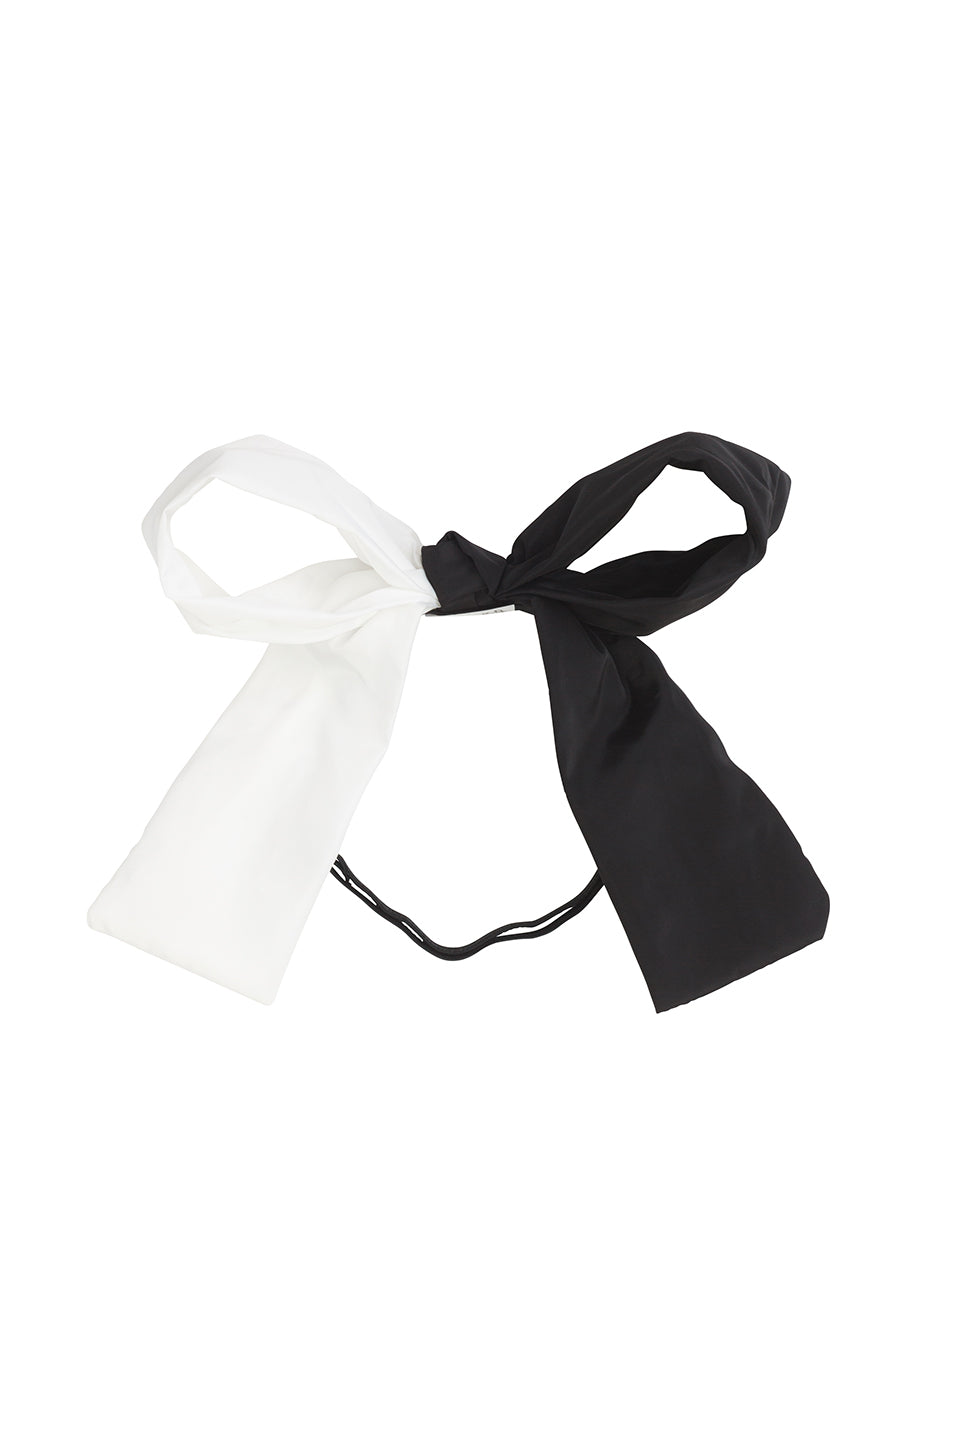 Sia Wrap - White/Black - PROJECT 6, modest fashion